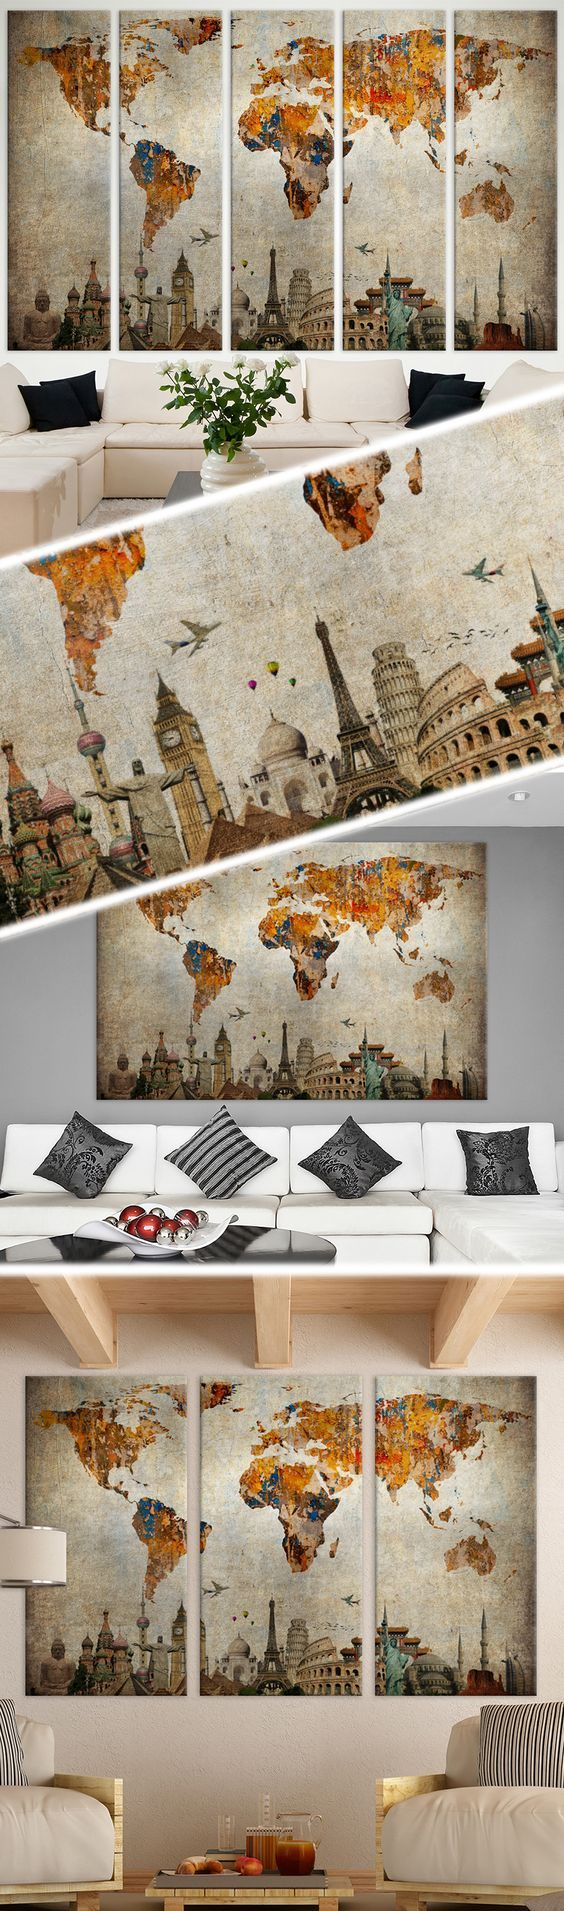 World map canvas print office walls wall decorations and